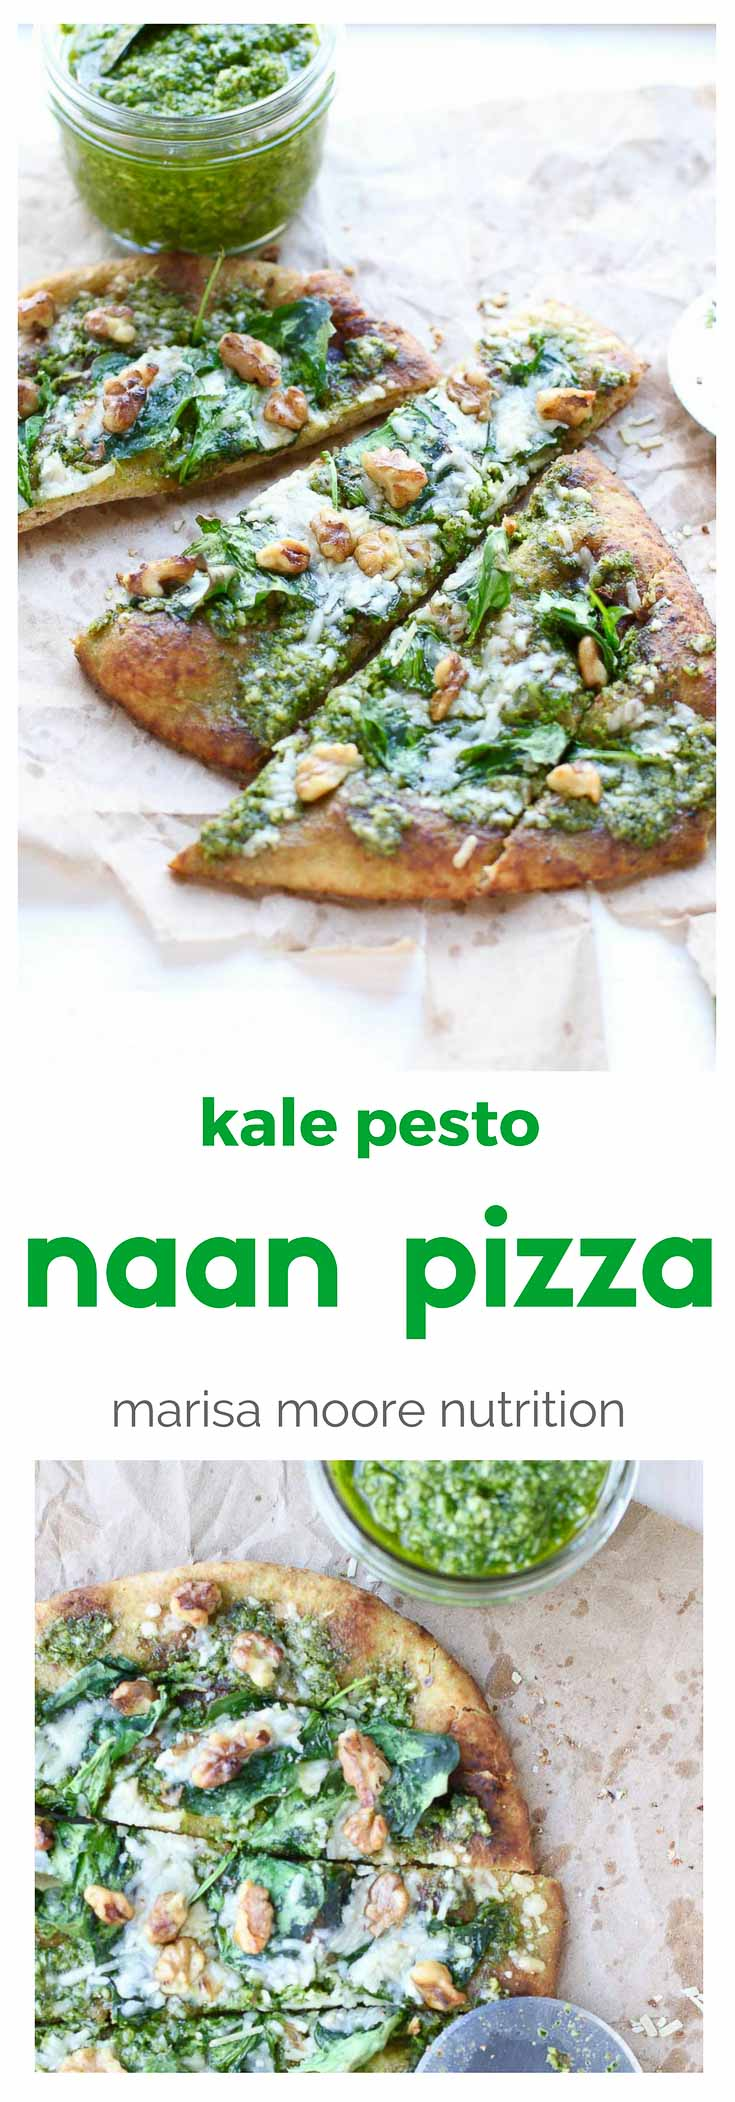 Kale Pesto Naan Pizza via @marisamoore